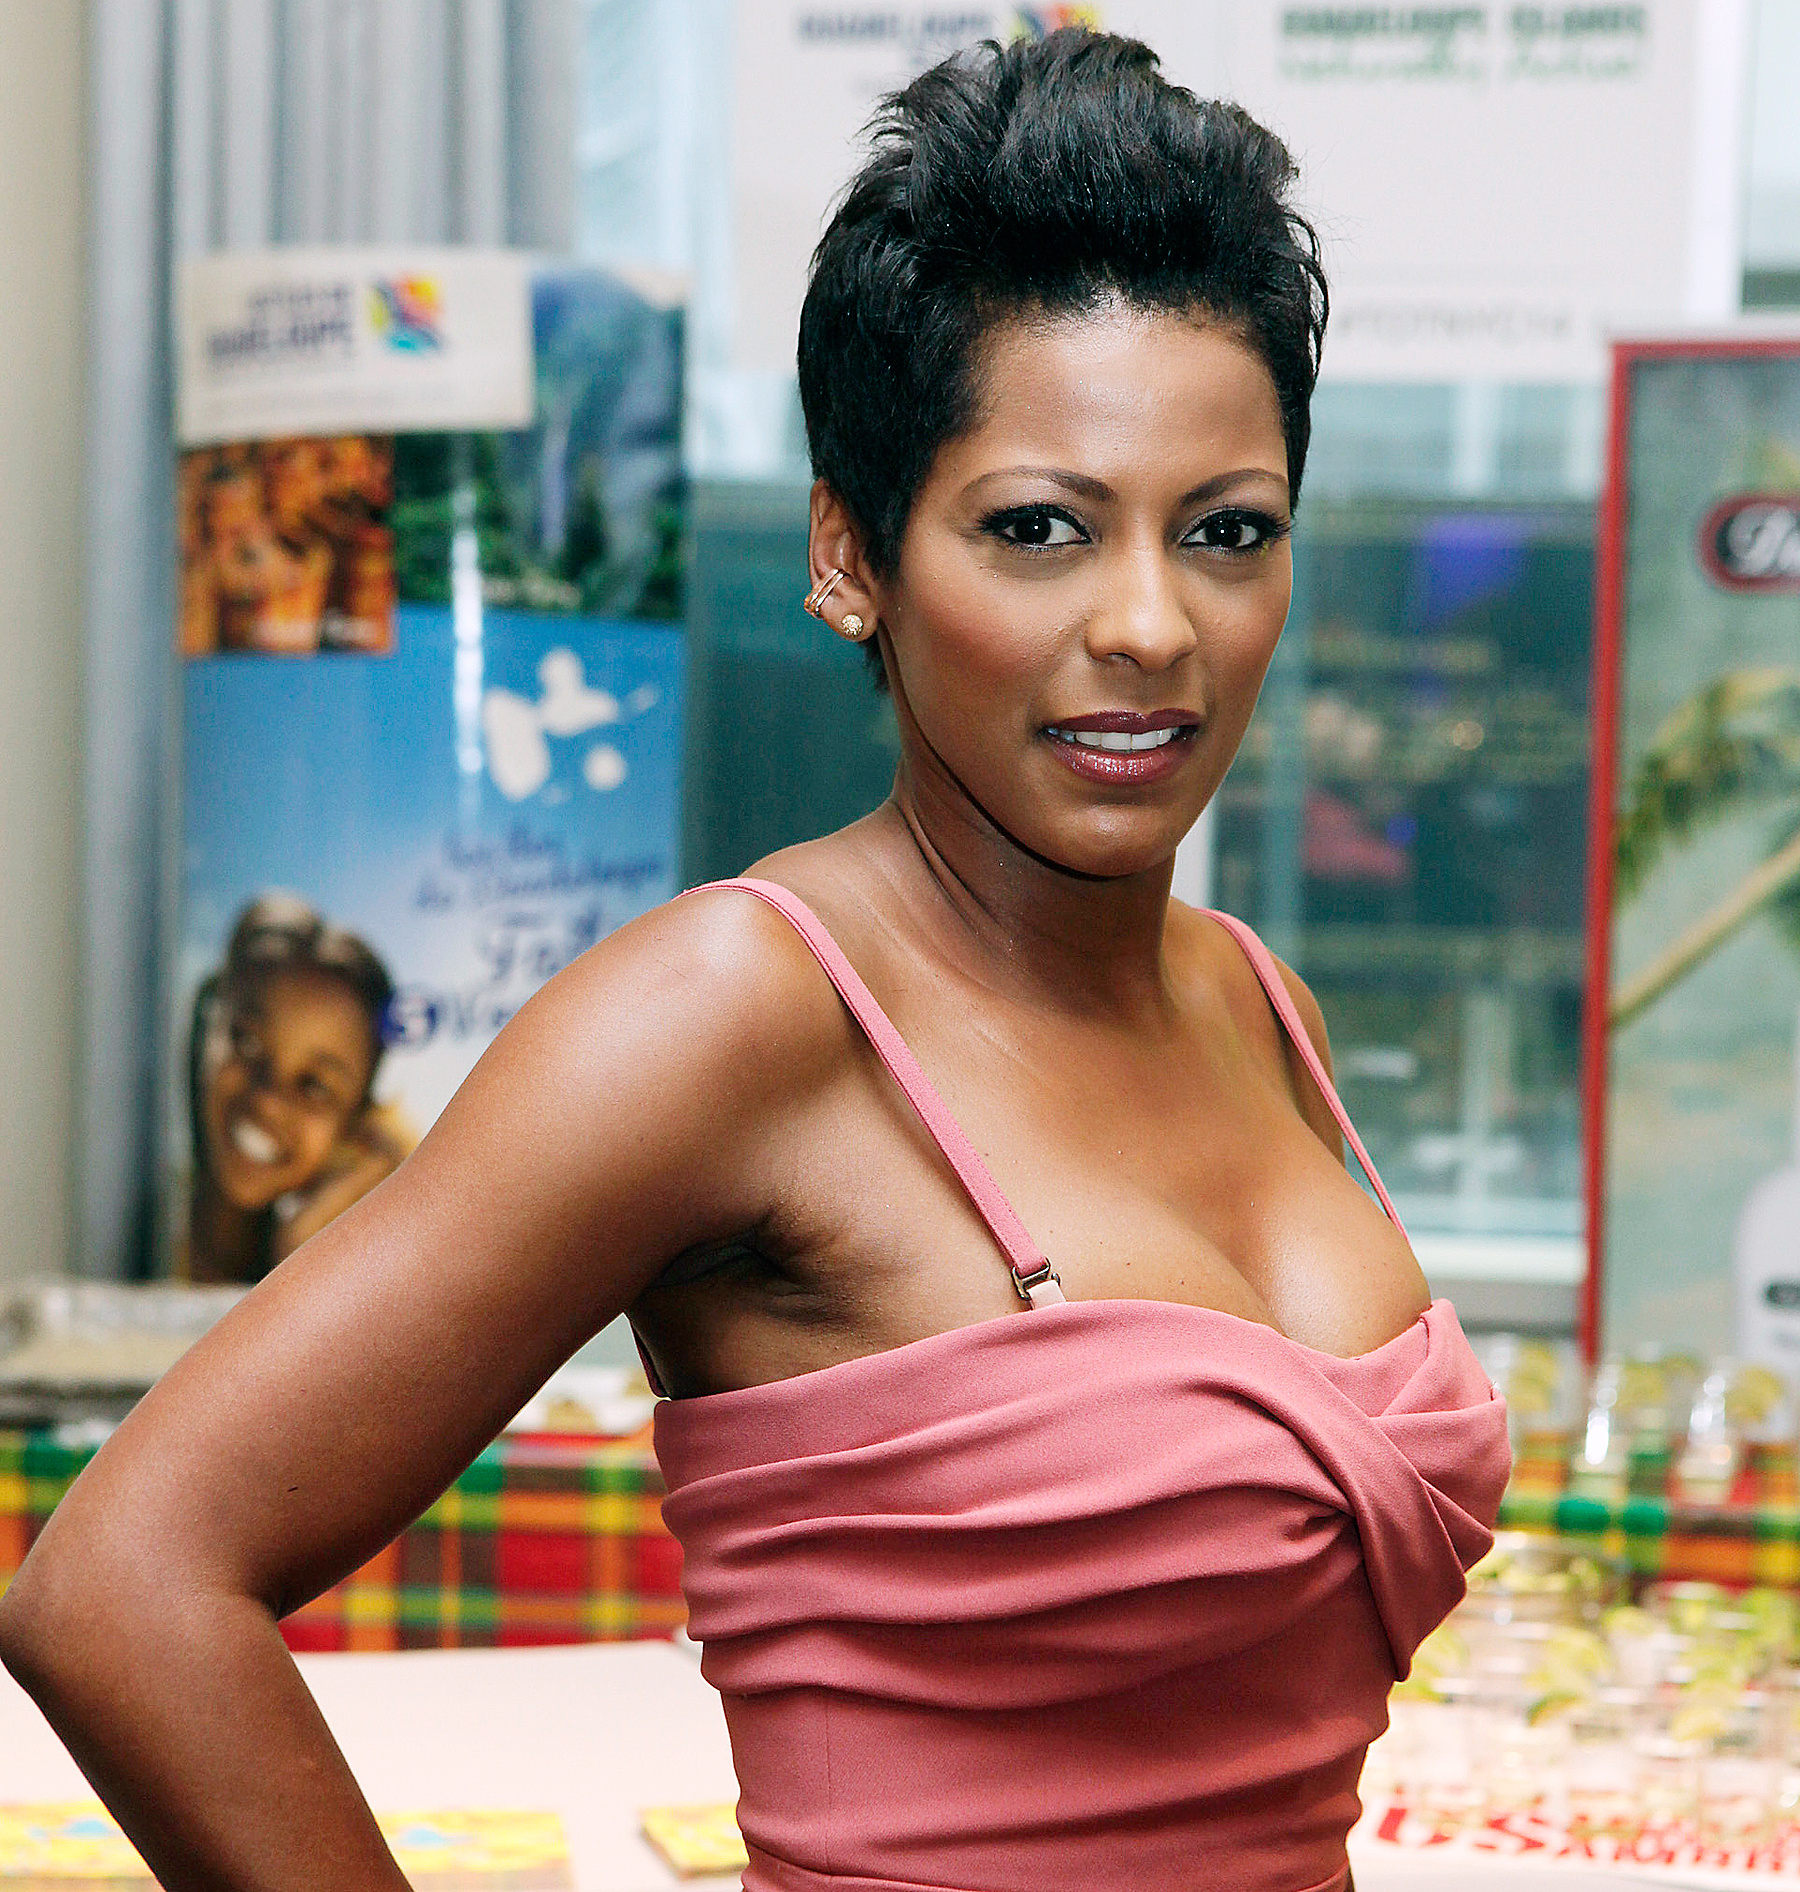 Tamron Hall 2017: dating, smoking, origin, tattoos & body.